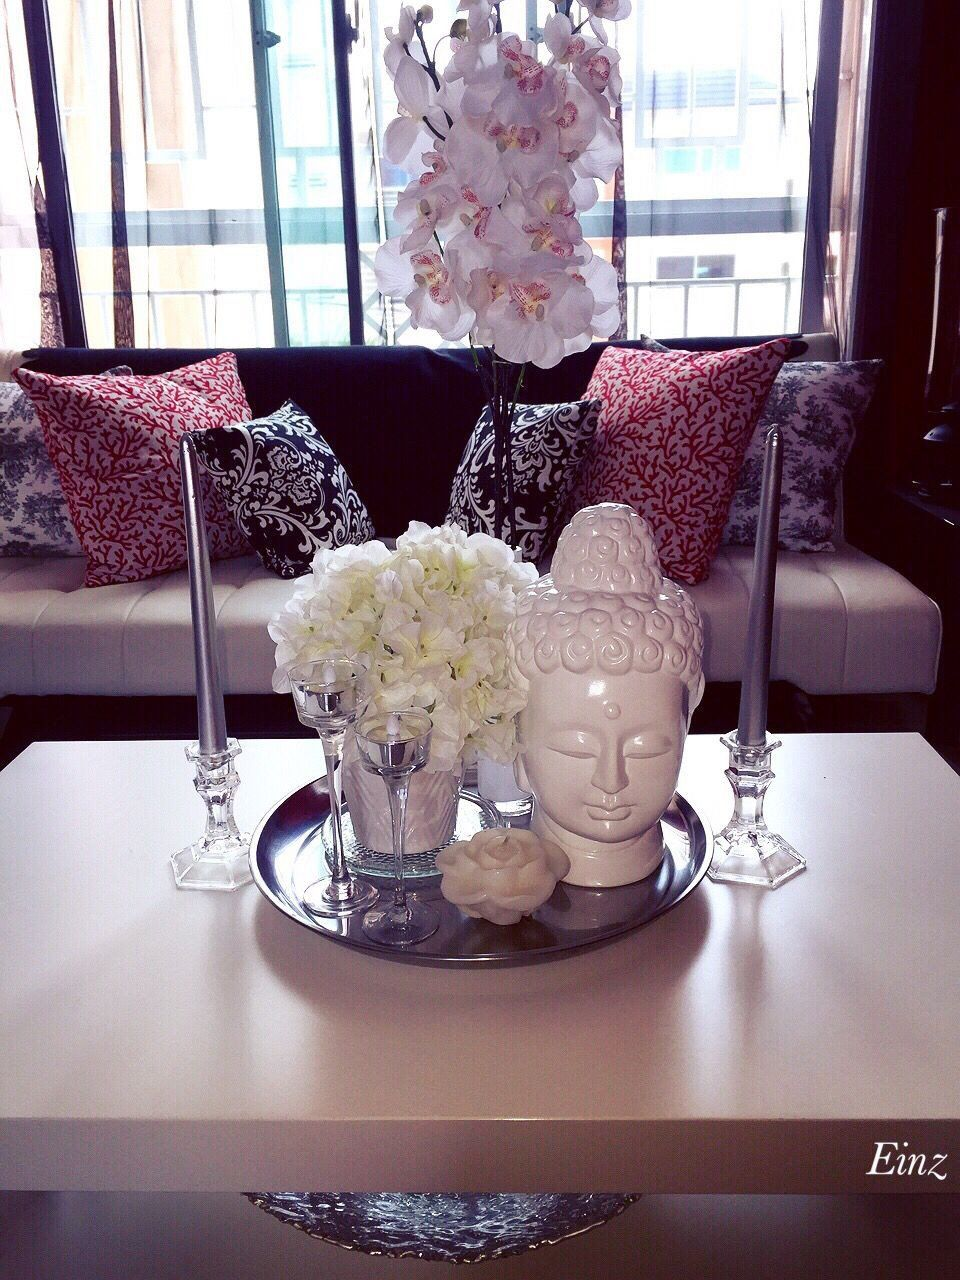 Tray Decoration Ideas Best Of White Silver Coffee Table Decor Hydrangeas Orchids Buddha In 2020 Glass Coffee Table Decor Coffee Table Centerpieces Side Table Decor